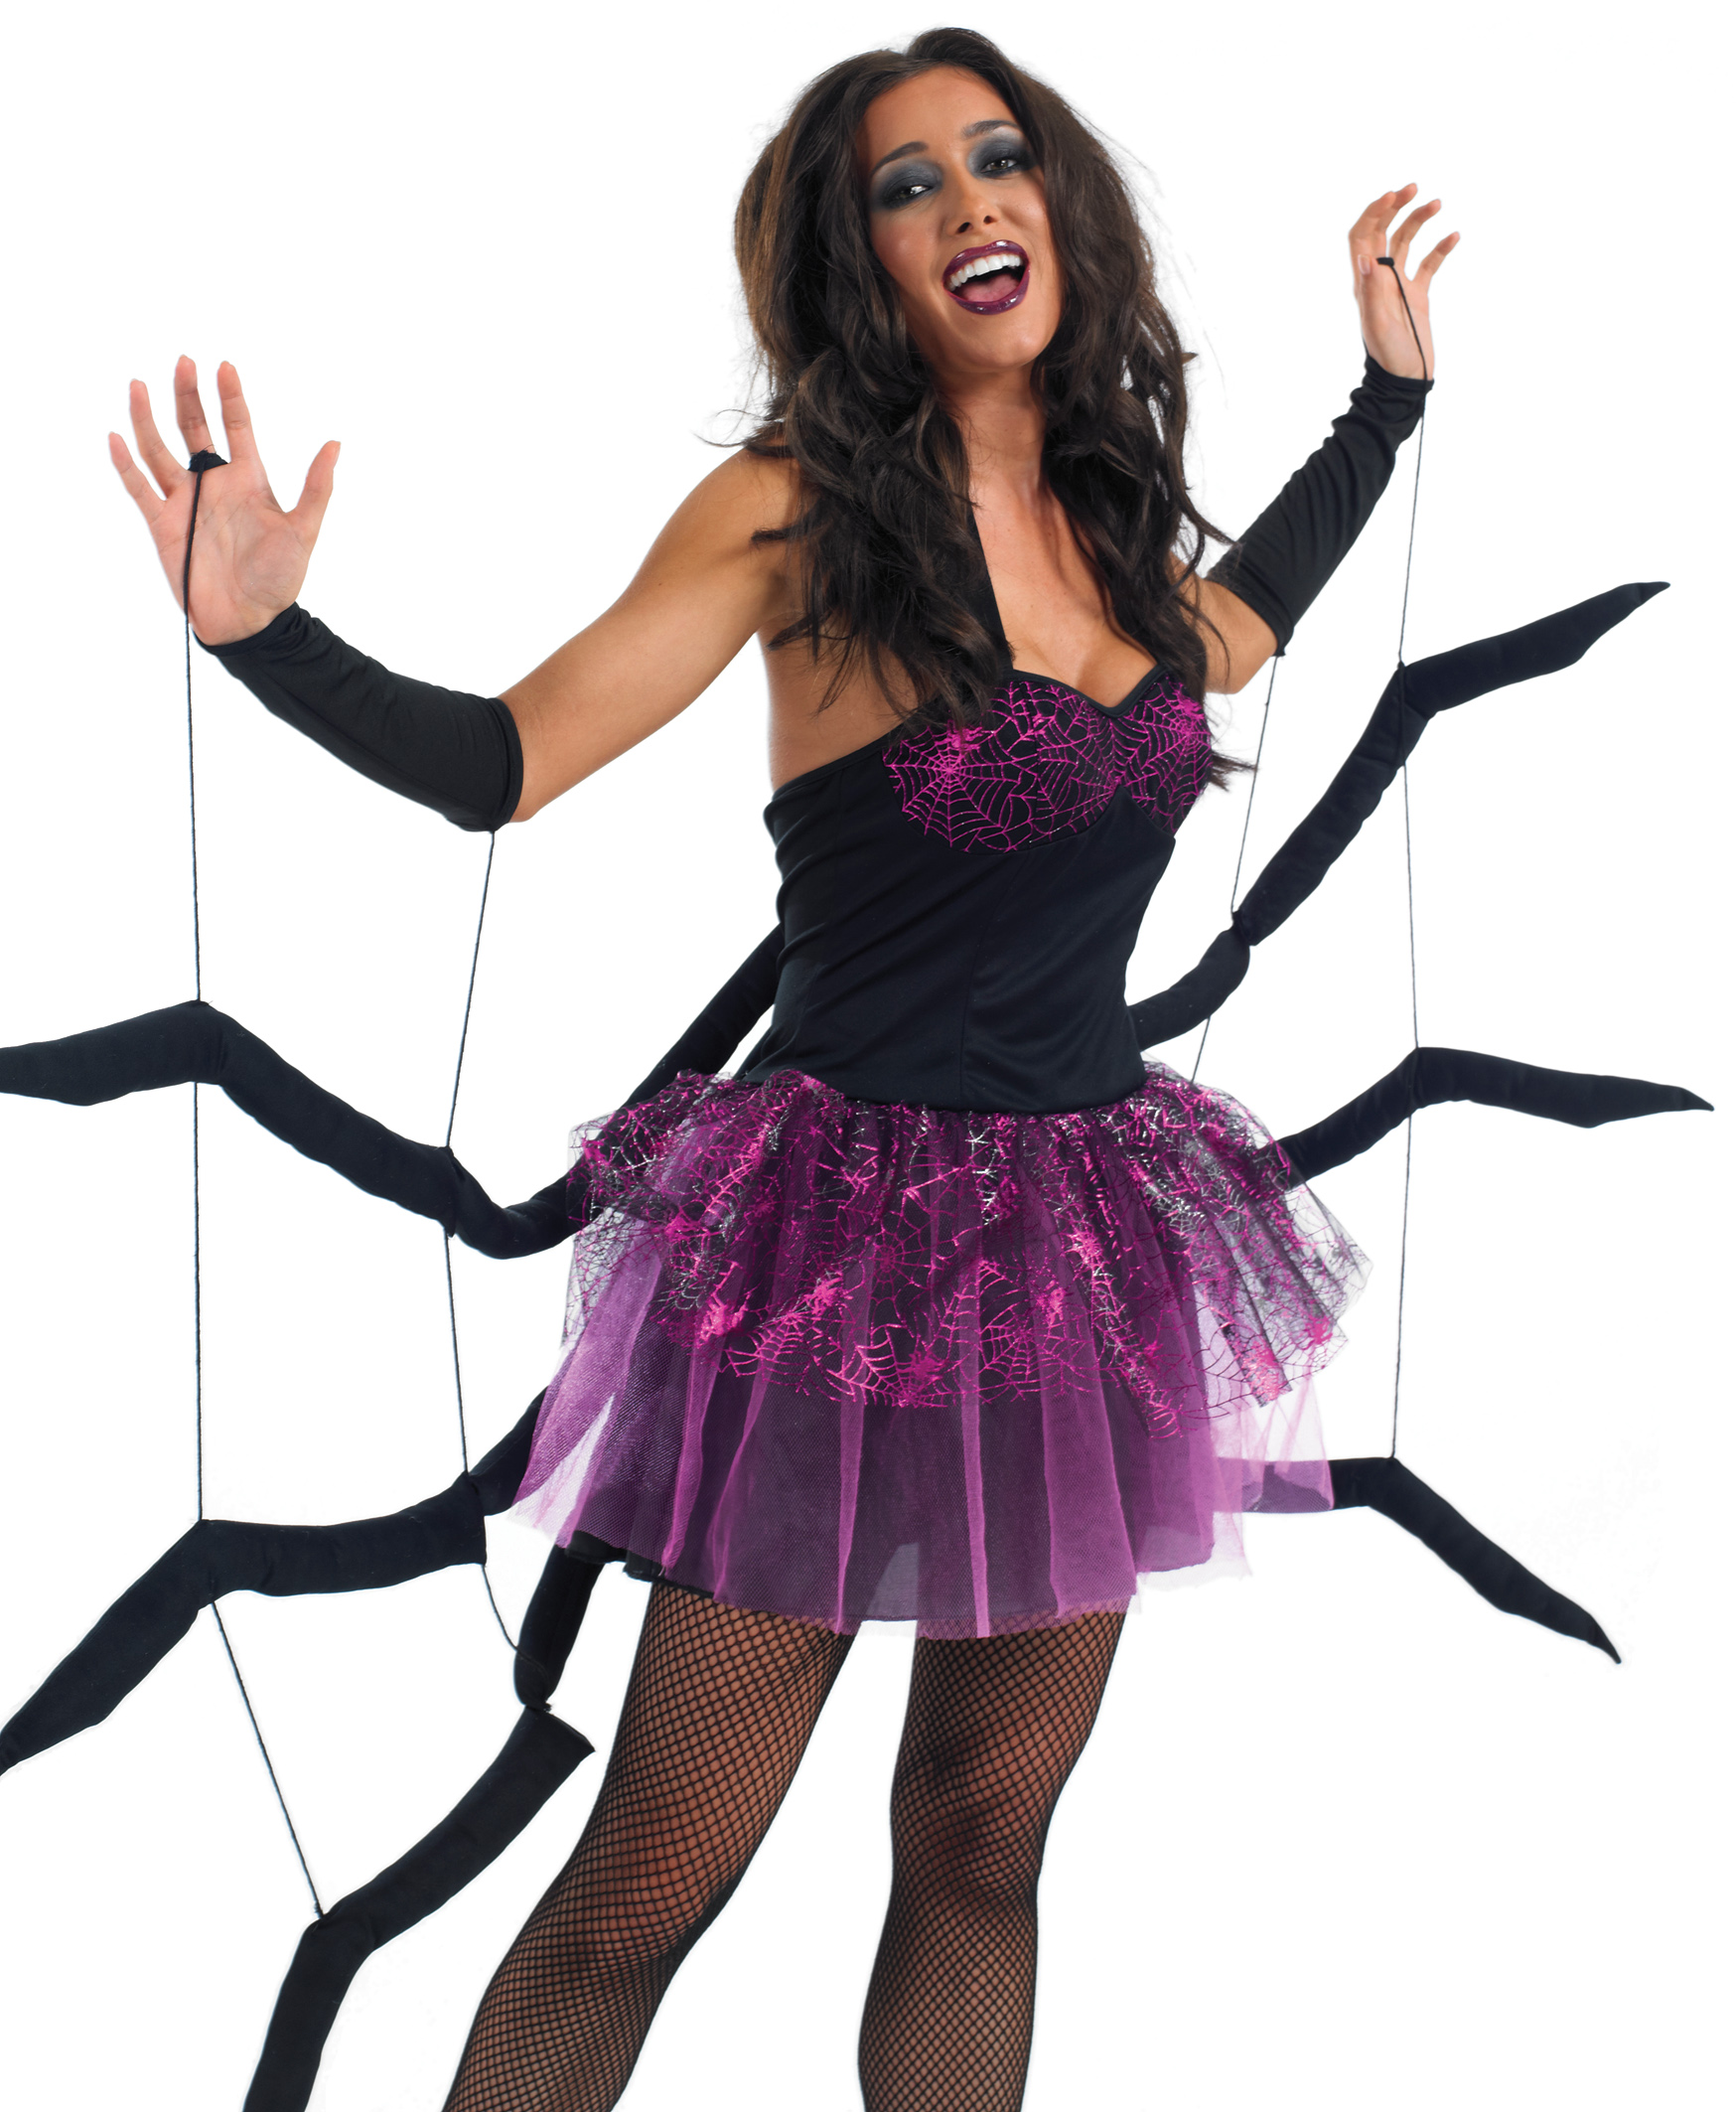 Black Widow Spider Costume  sc 1 st  Mega Fancy Dress & Black Widow Spider Costume | All Ladies Halloween Costumes | Mega ...